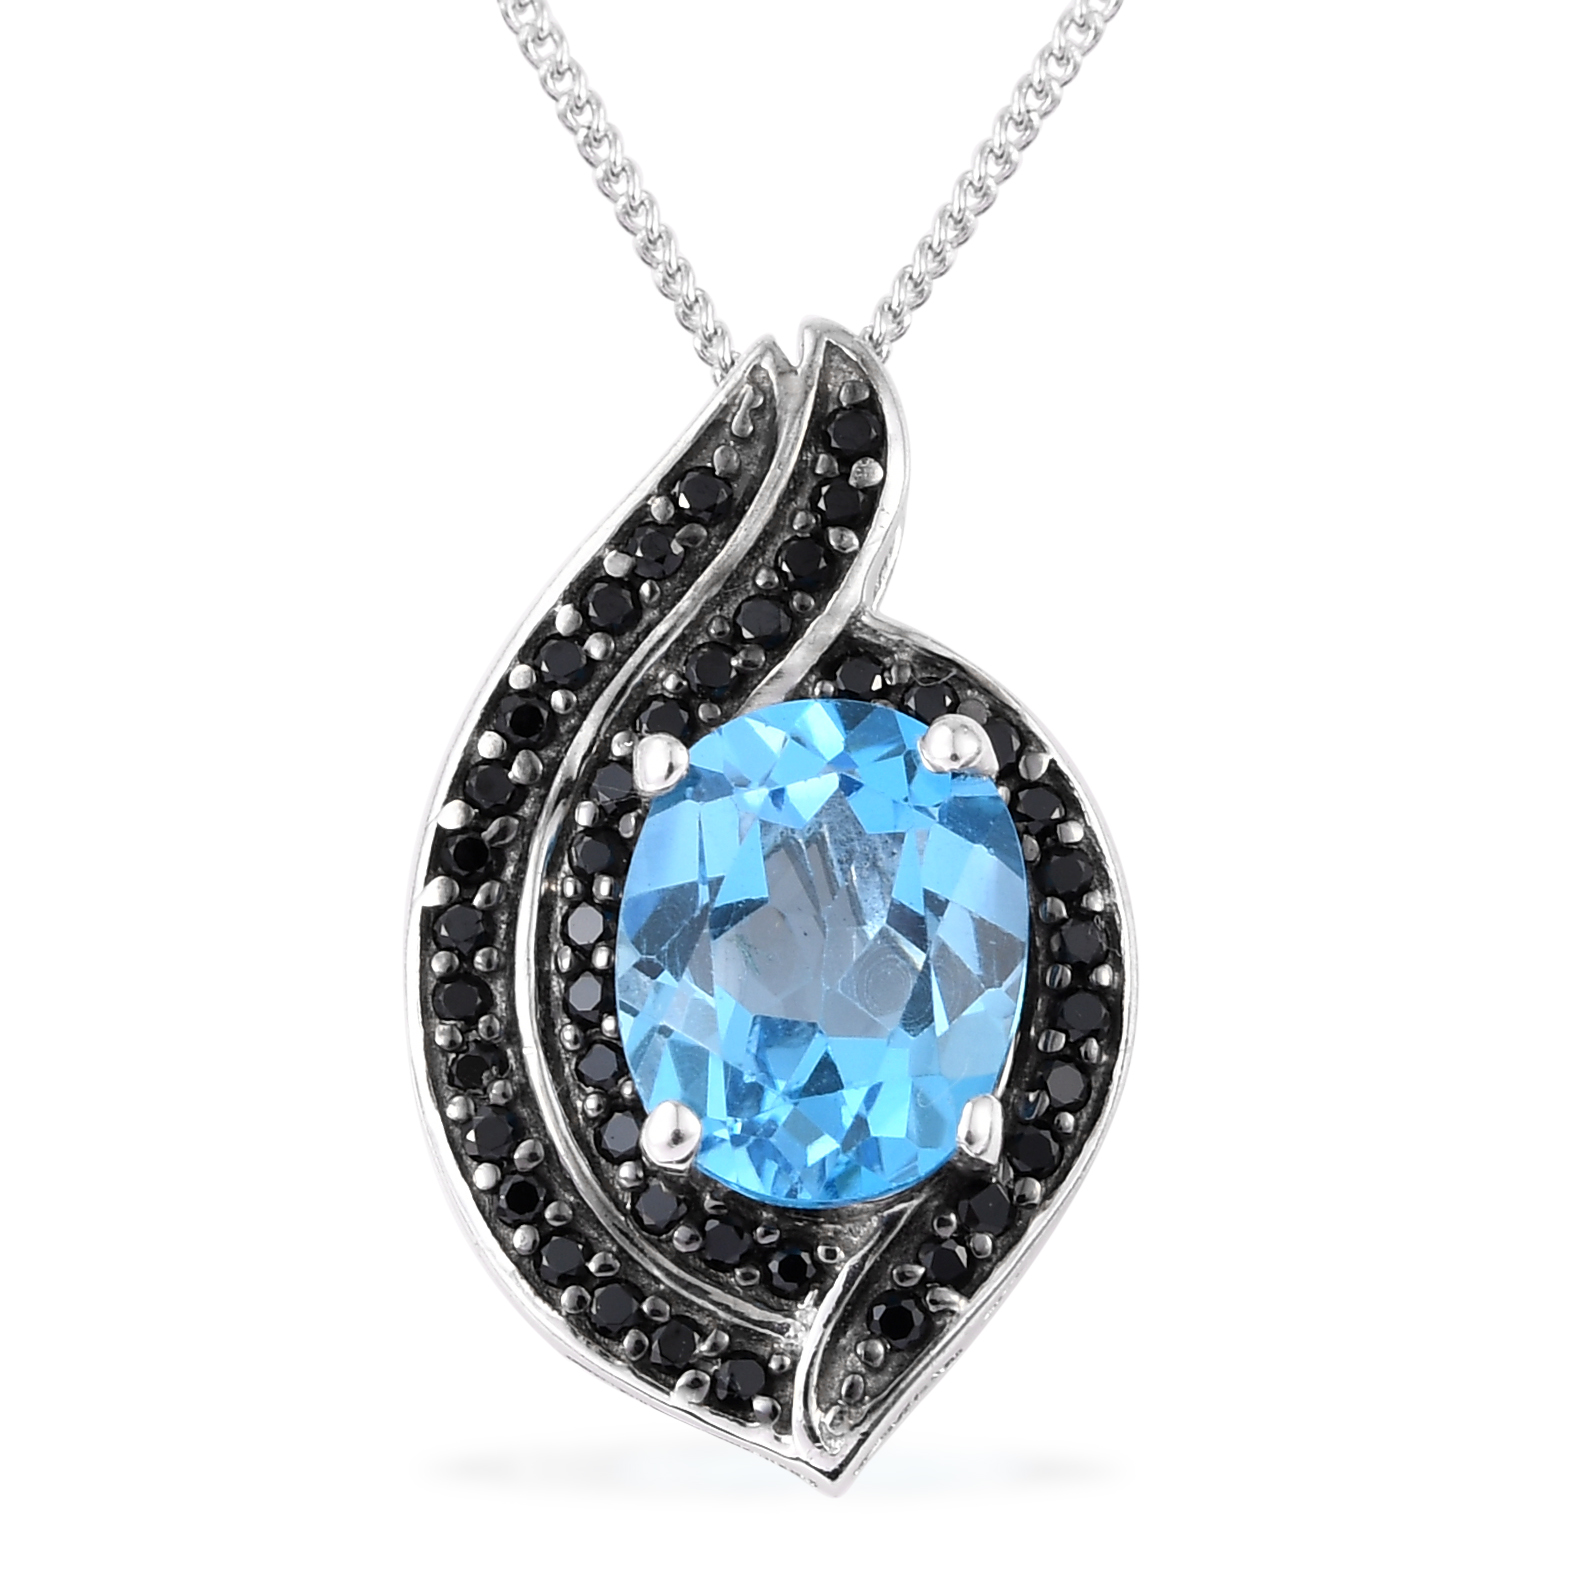 7b62239e495c63 Details about Silver Black Rhodium Plated Topaz Black Spinel Pendant  Necklace 20'' Cttw 2.2